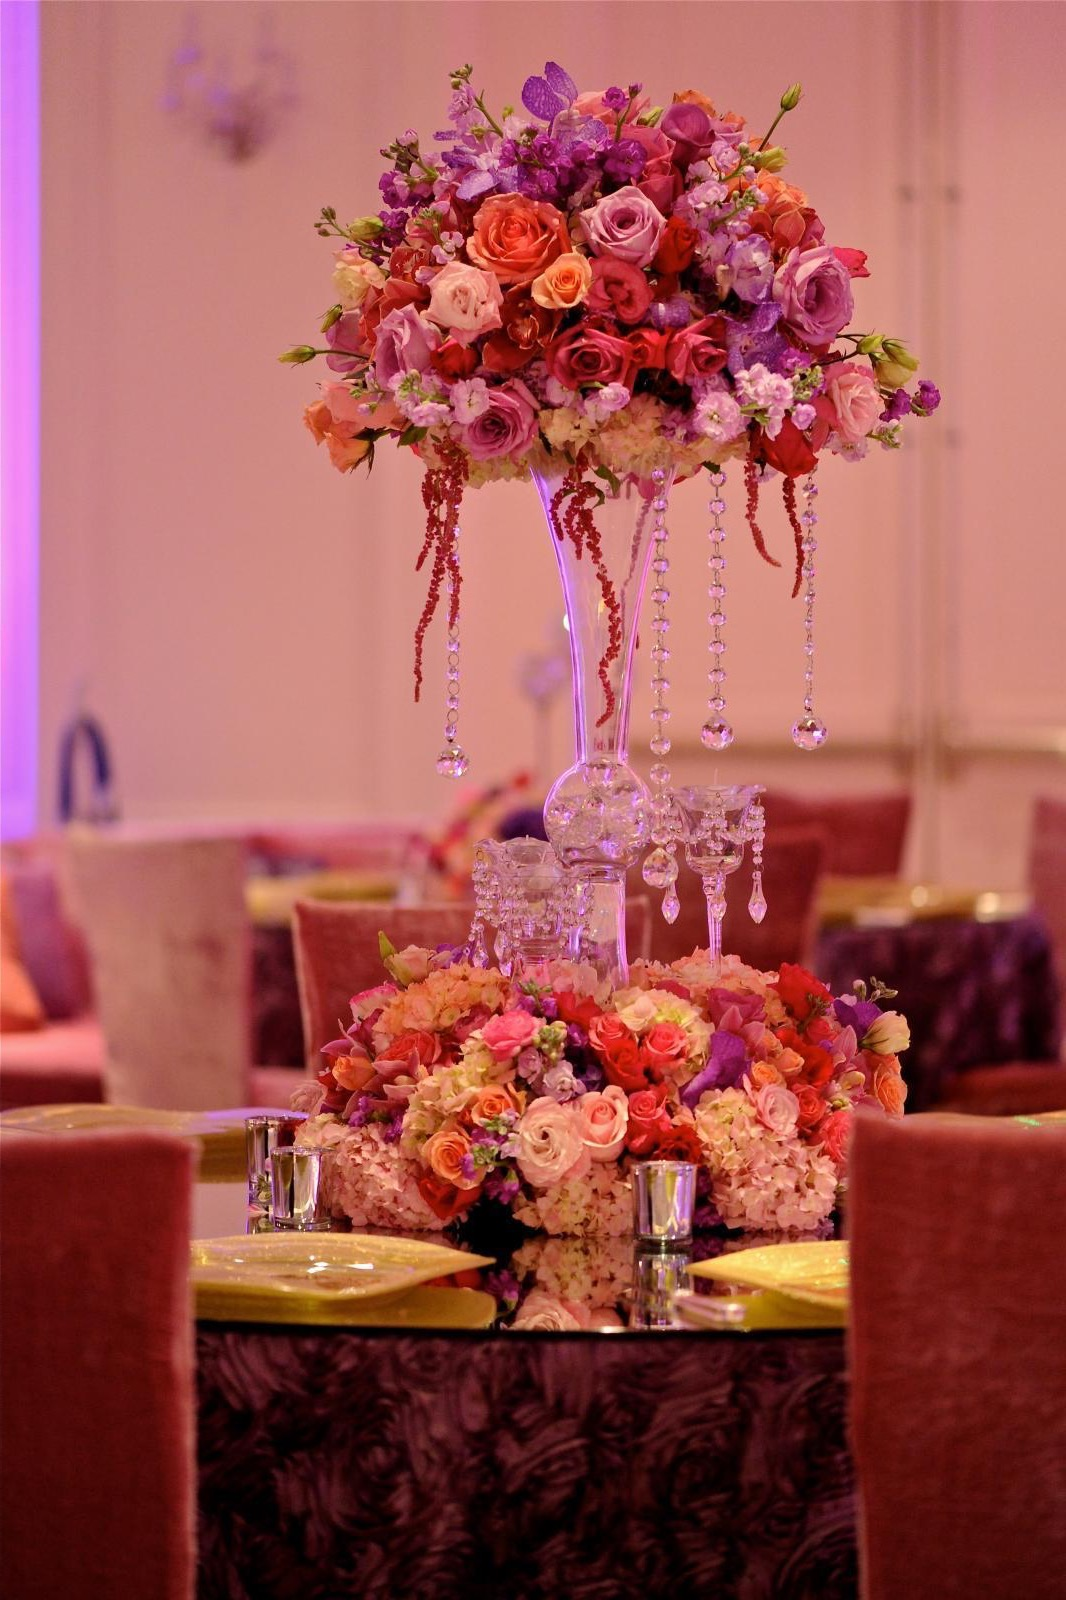 Deluxe Purple Rose Flower Arrangements With Crystals Centerpieces For Ballroom Wedding (View 6 of 30)